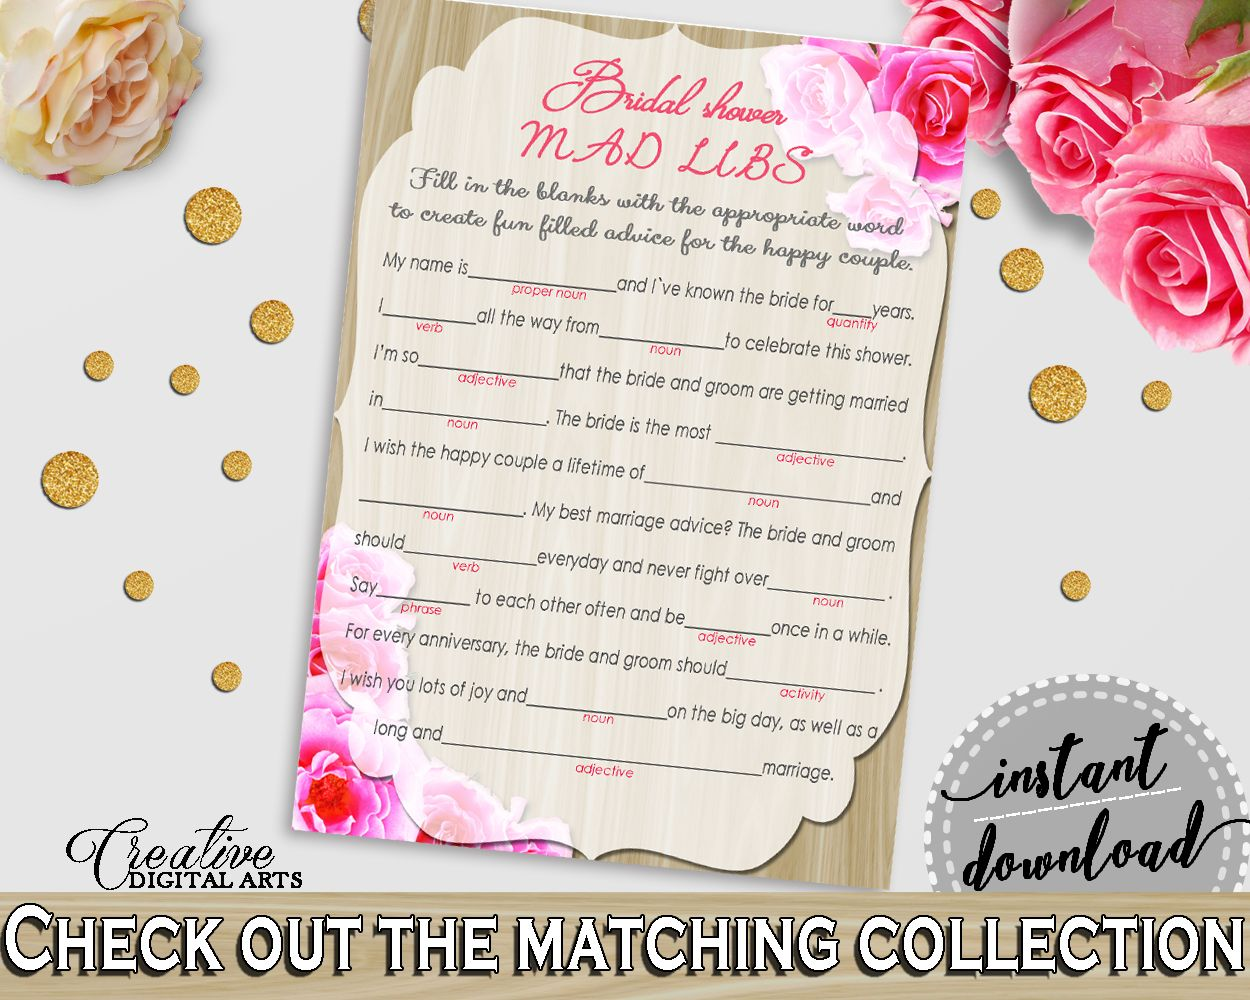 Roses On Wood Bridal Shower Mad Libs Game In Pink And